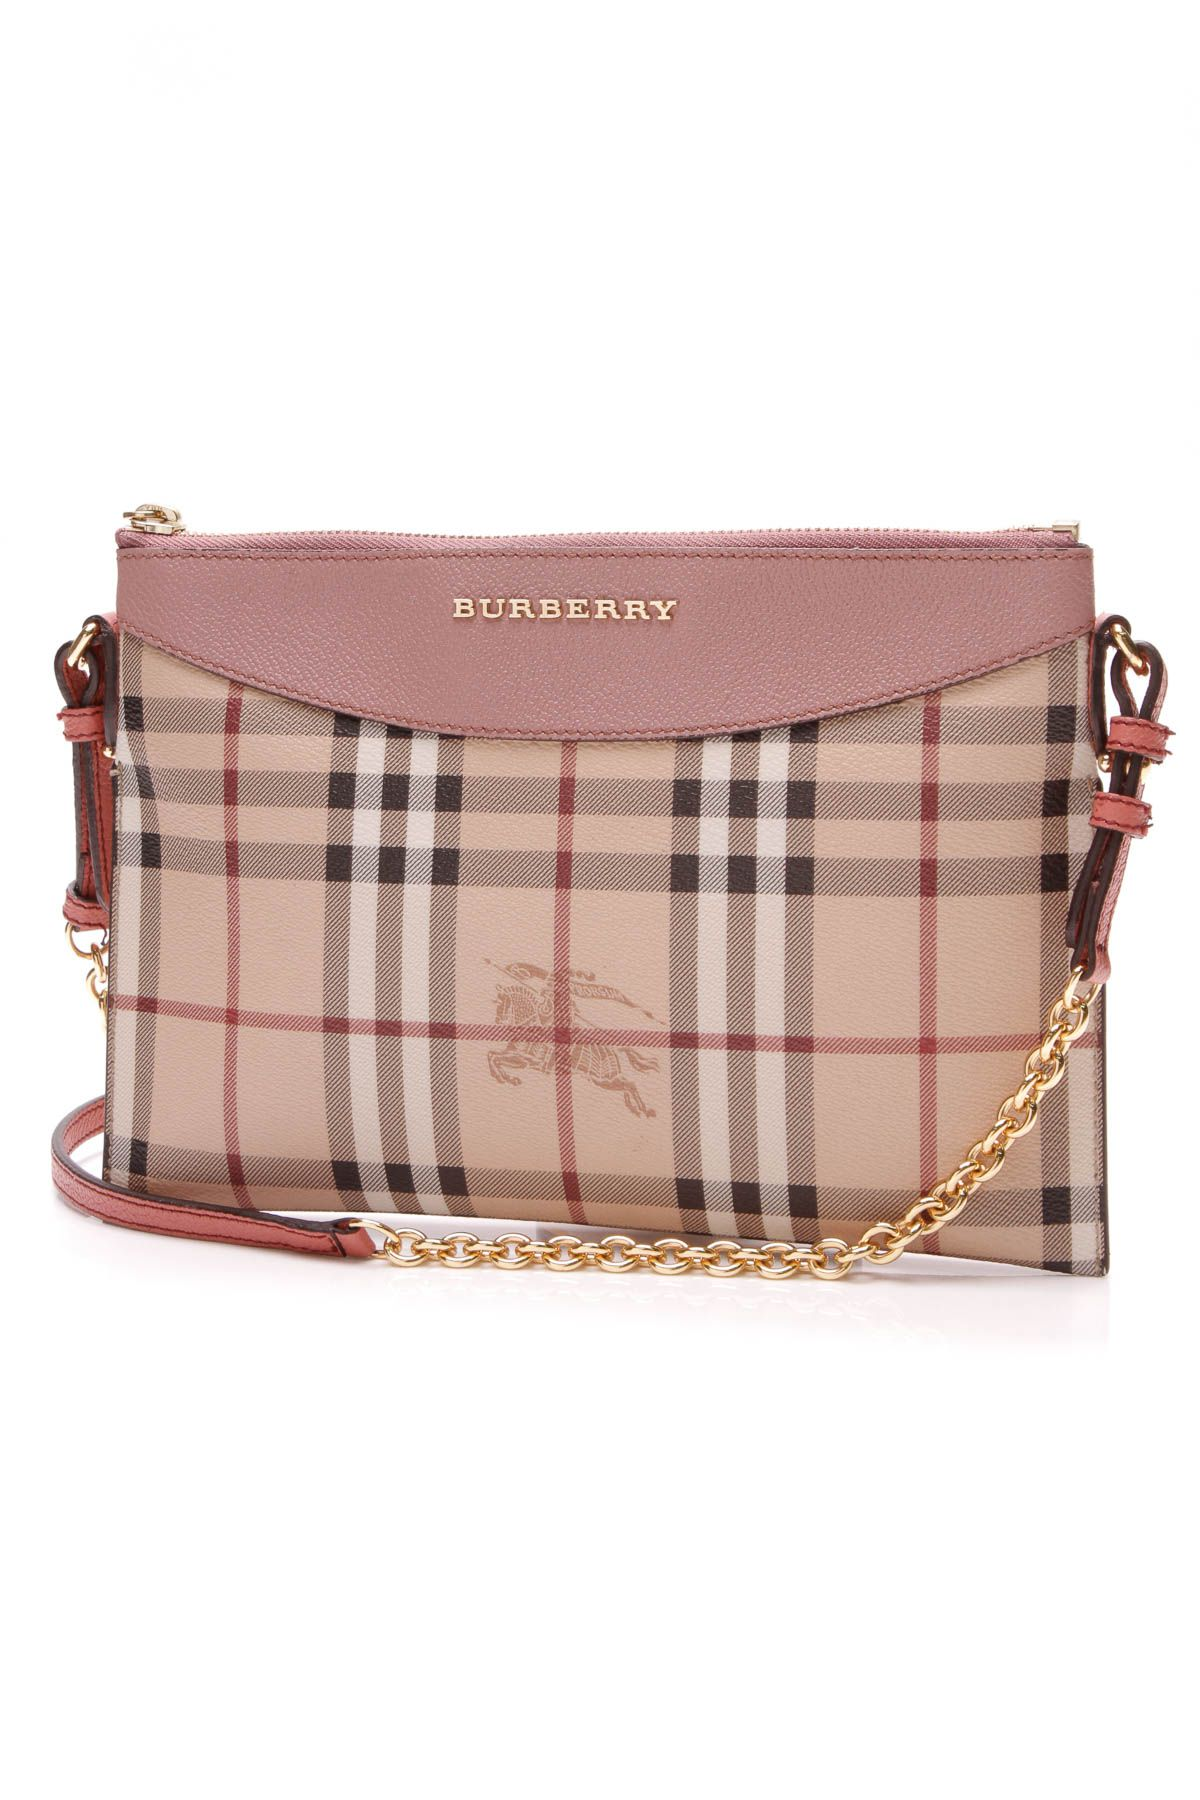 0bc15f703b5f Burberry Peyton Crossbody Bag - Haymarket Check Pink